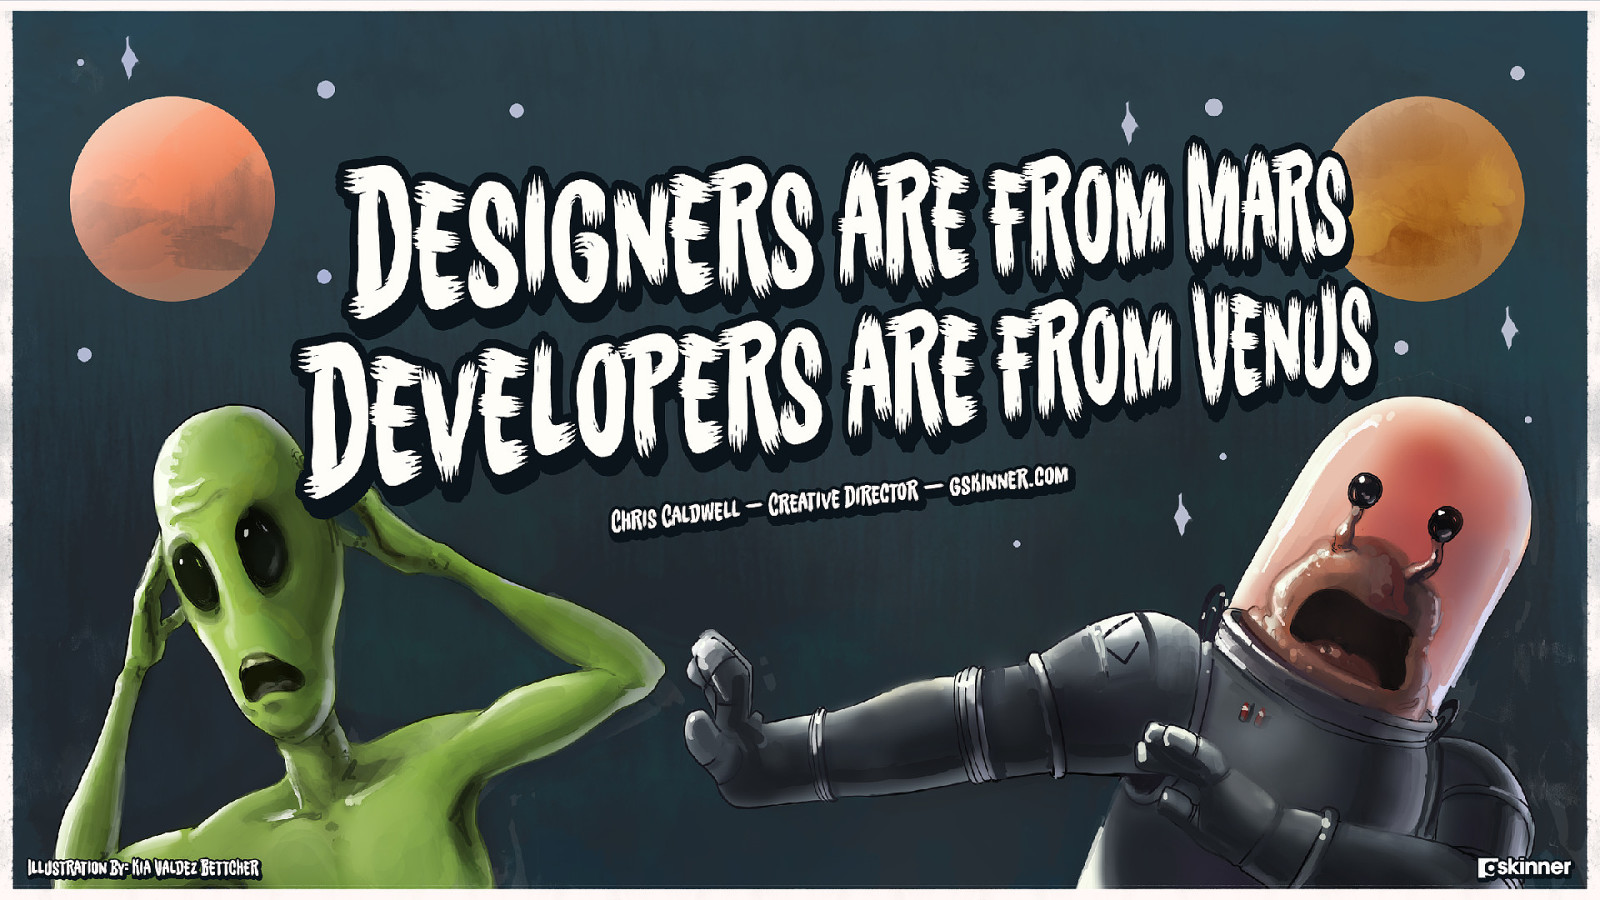 Designers are from Mars, Developers are from Venus